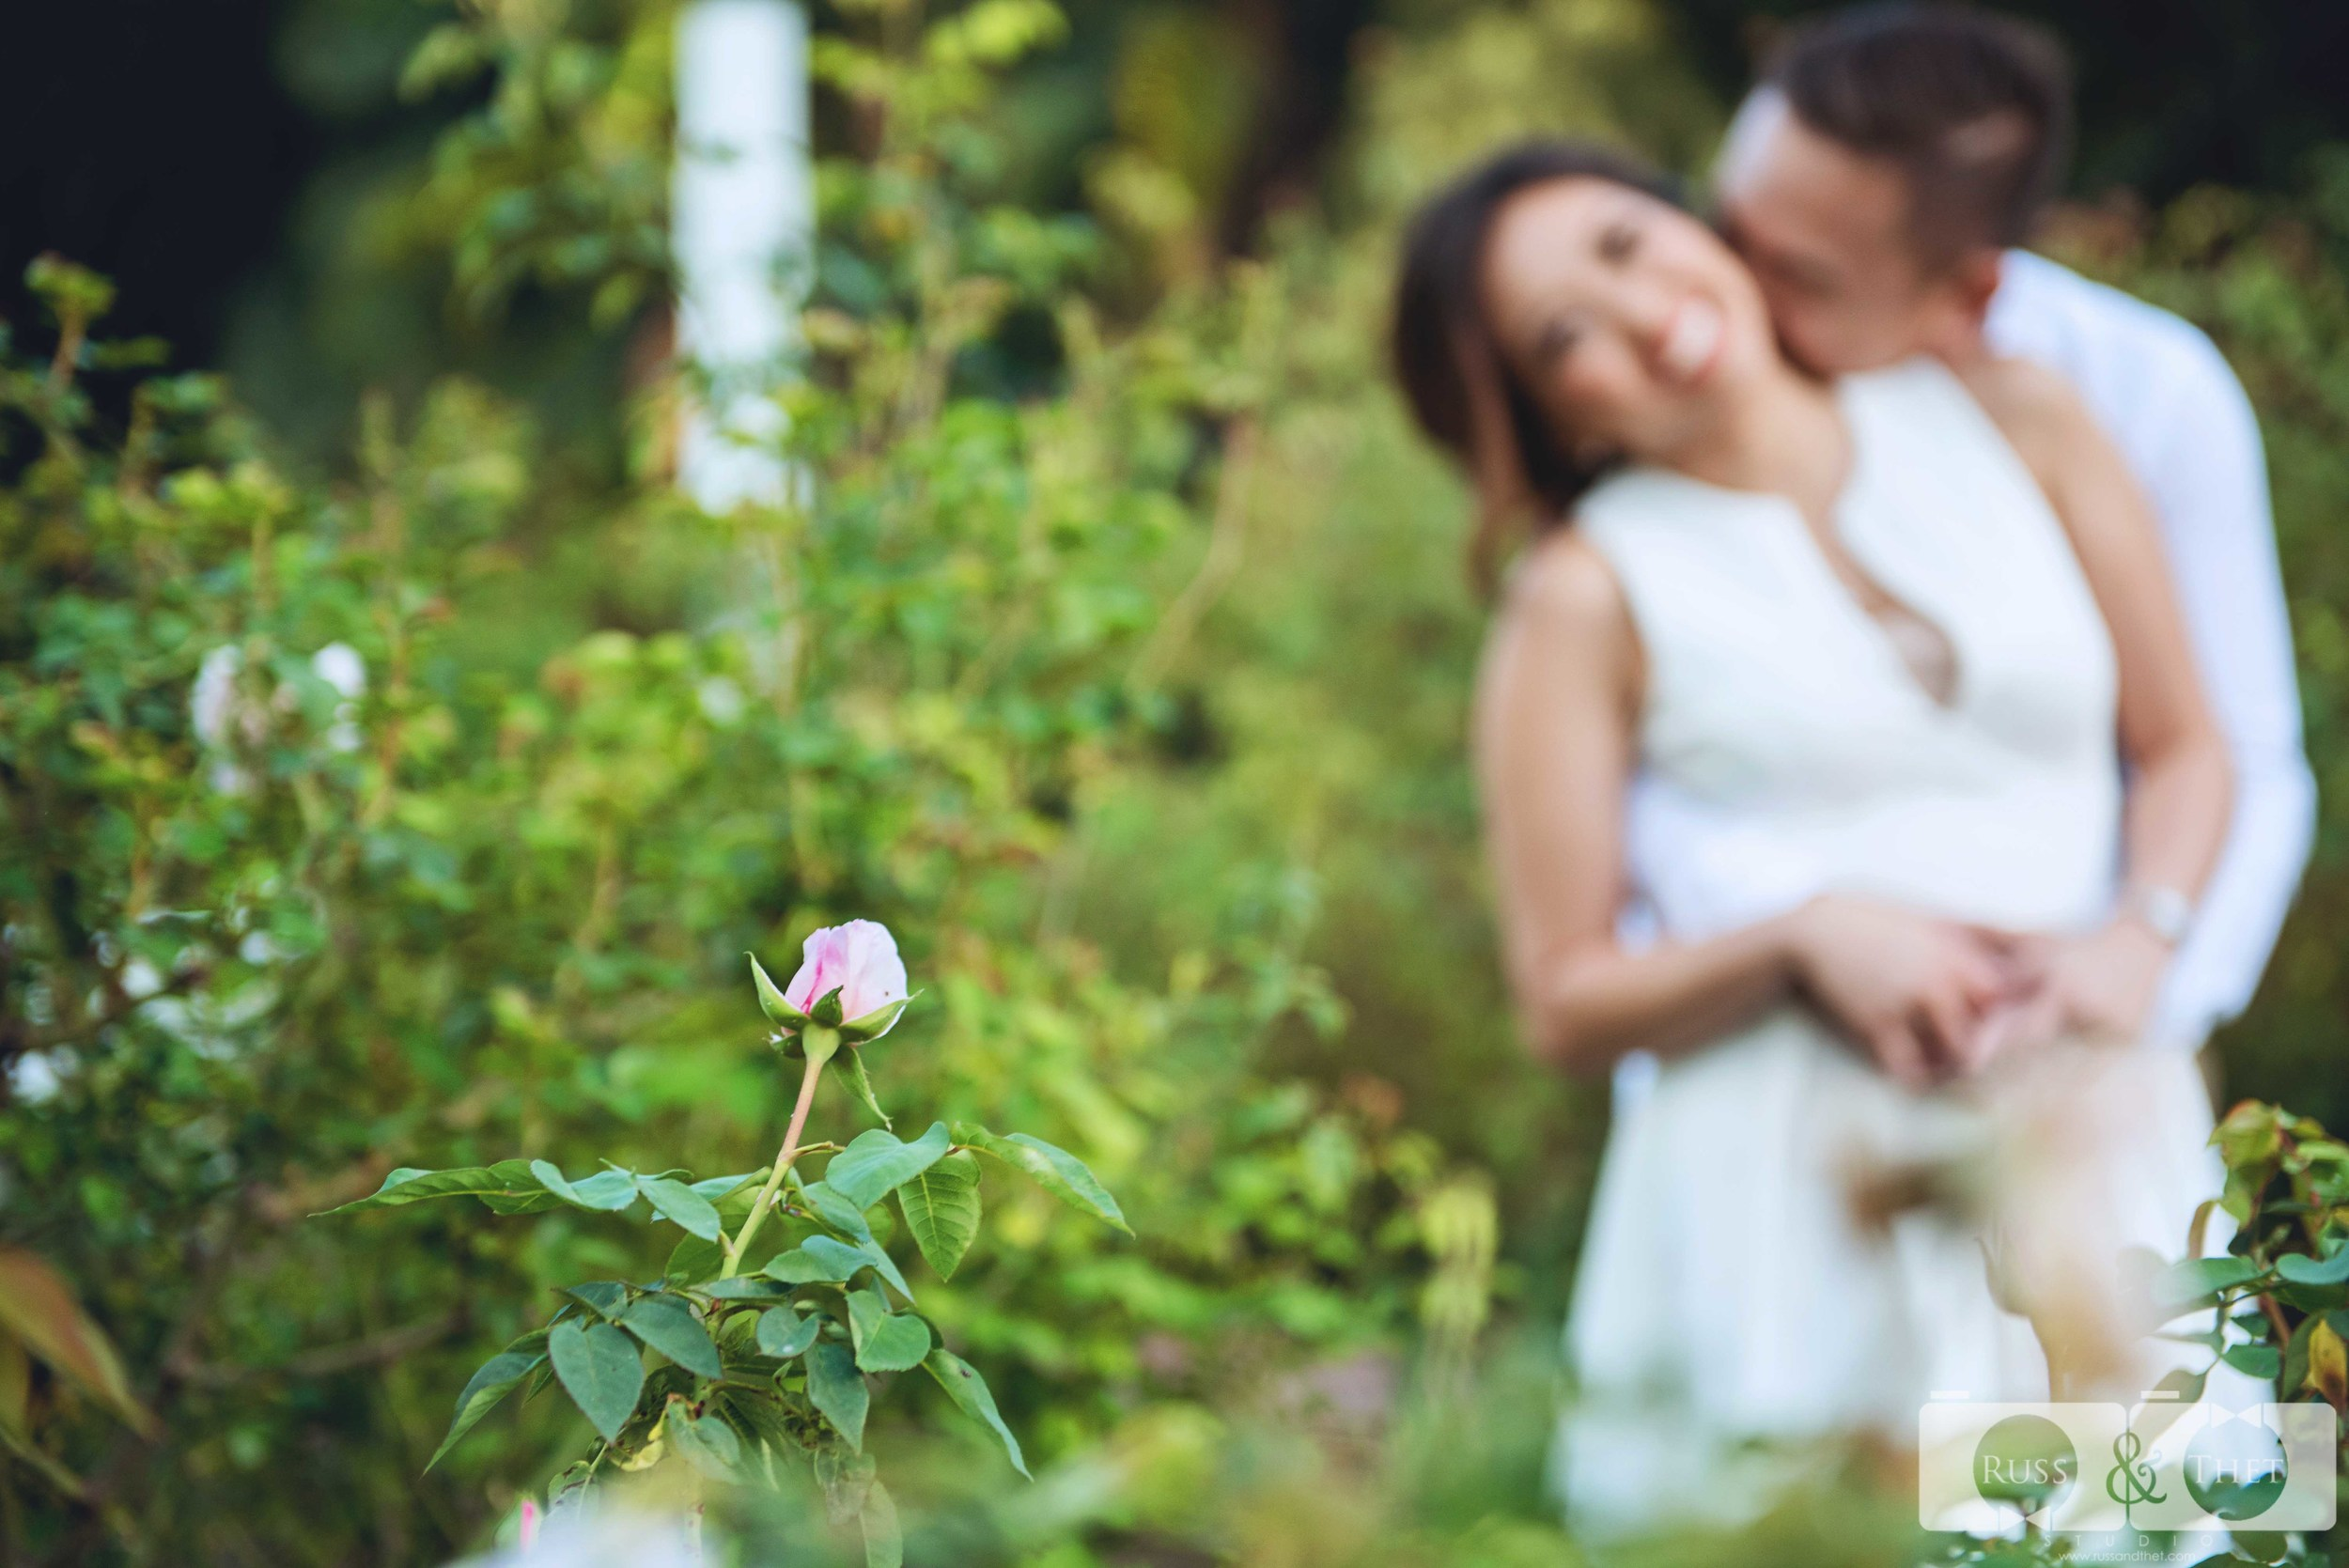 LA-arboretum-engagement-session-20.JPG